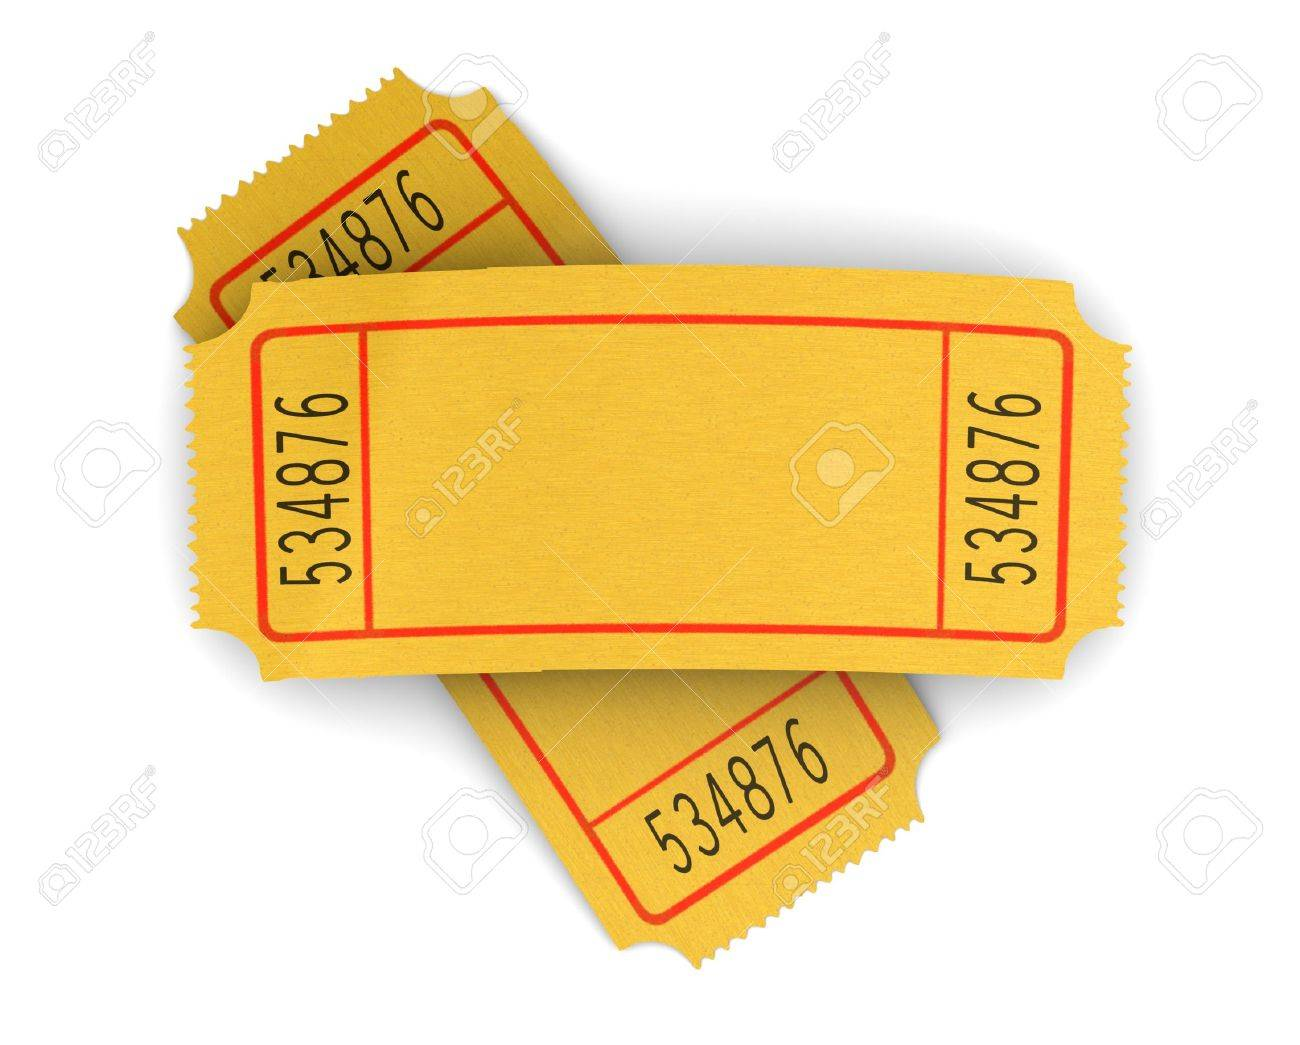 3d illustration of two blank cinema tickets, over white background Stock Photo - 11413679